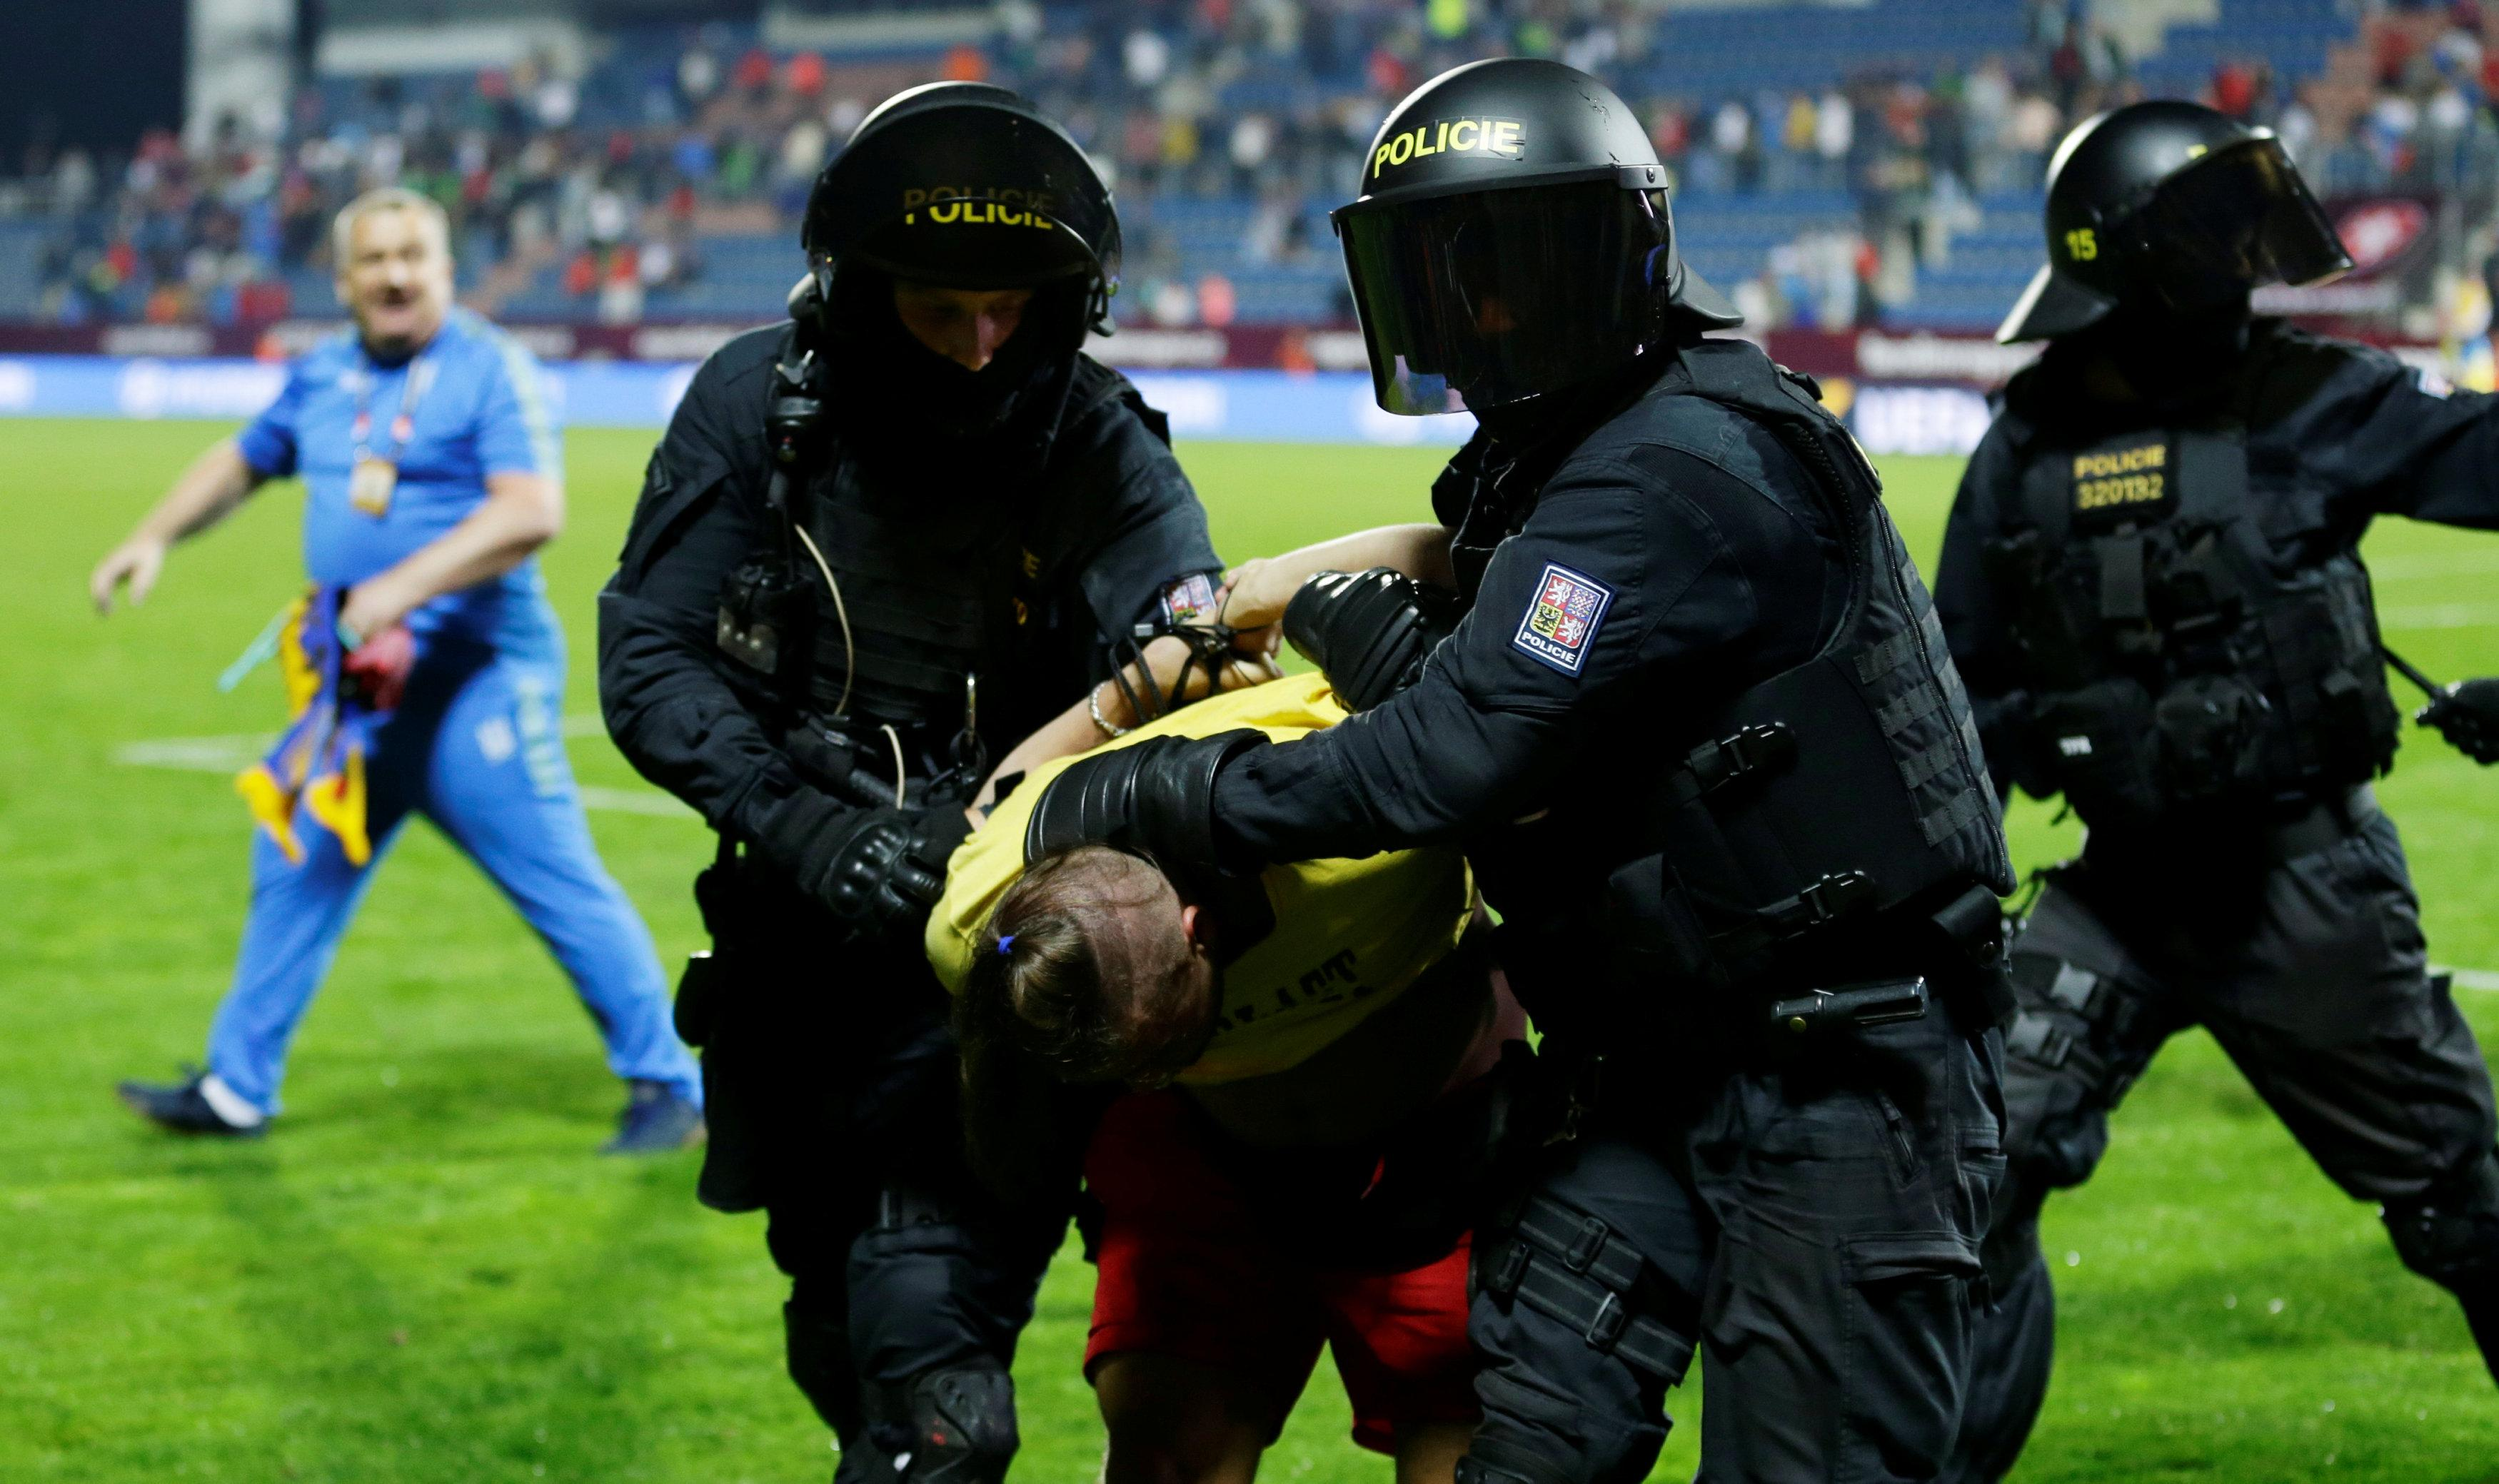 Riot police intervened after Thursday night's game as they escorted pitch invaders off the field